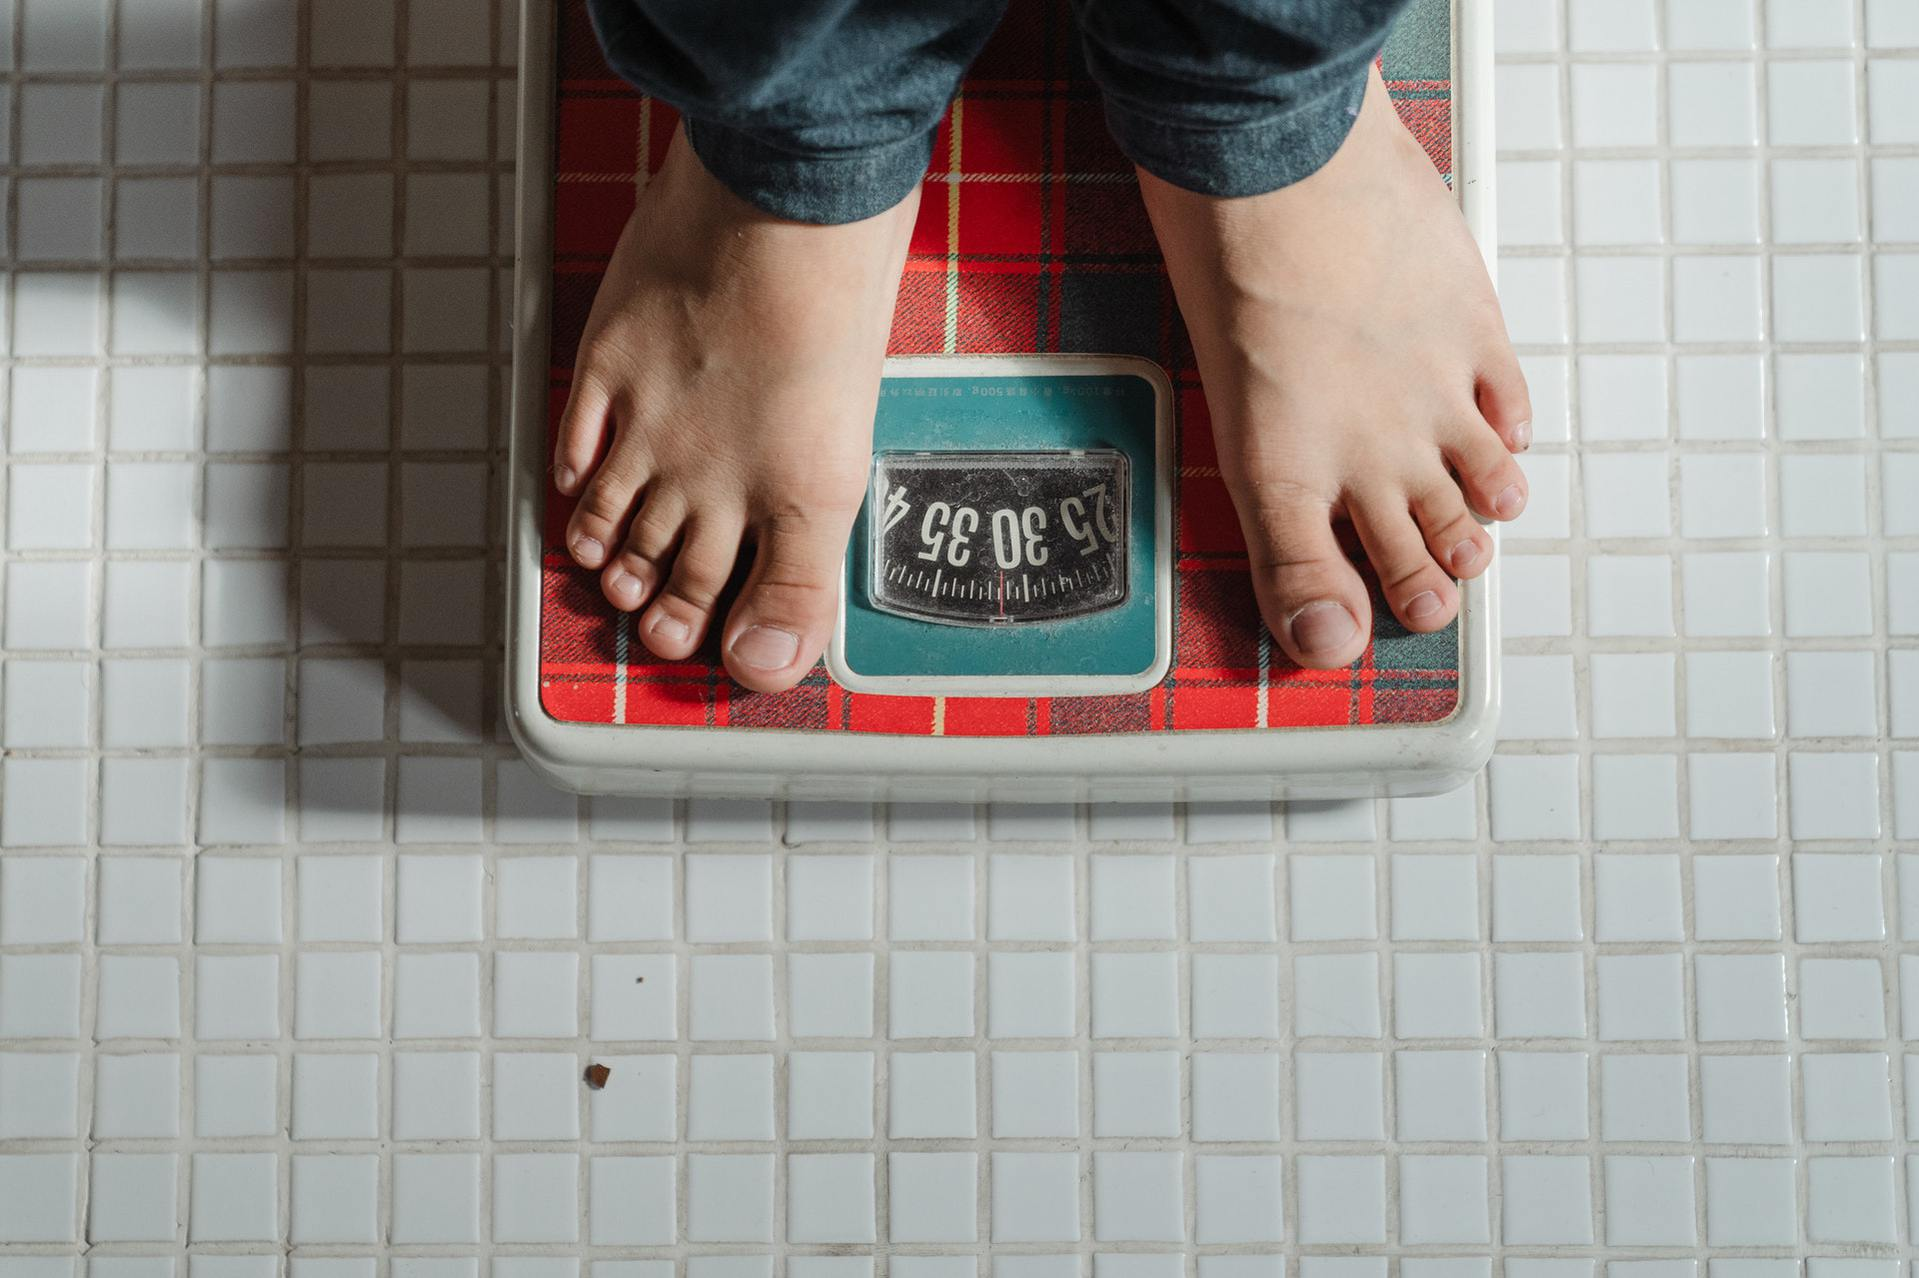 How to lose weight fast? 5 Tips to follow